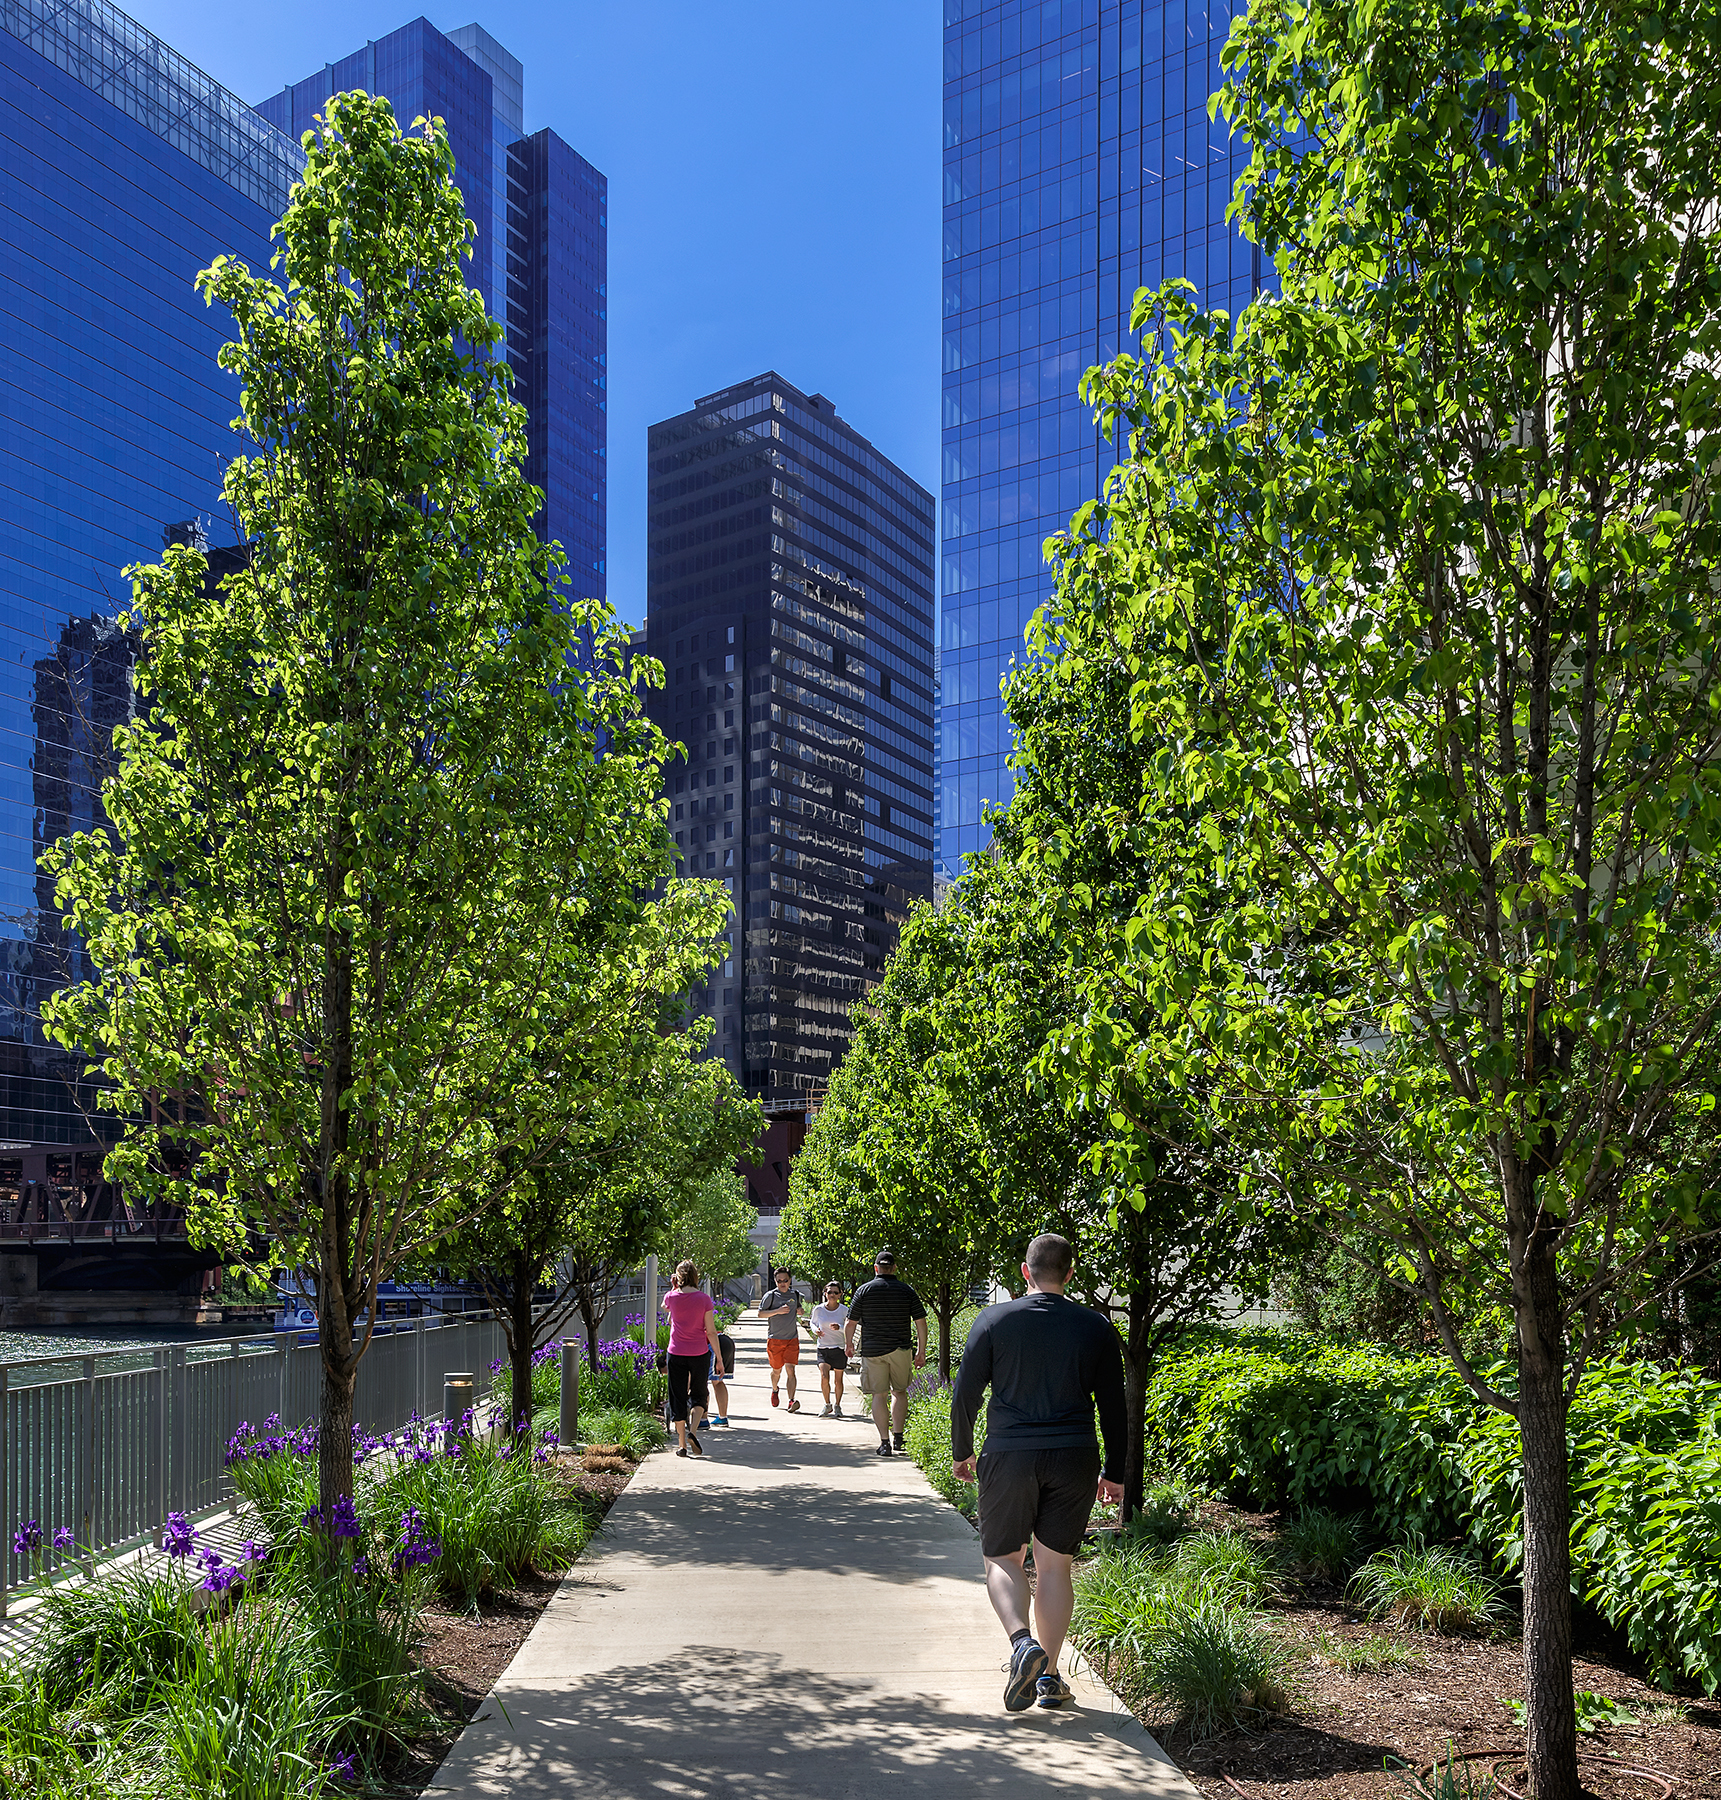 River_Point_Chicago_Illinois_Riverwalk08